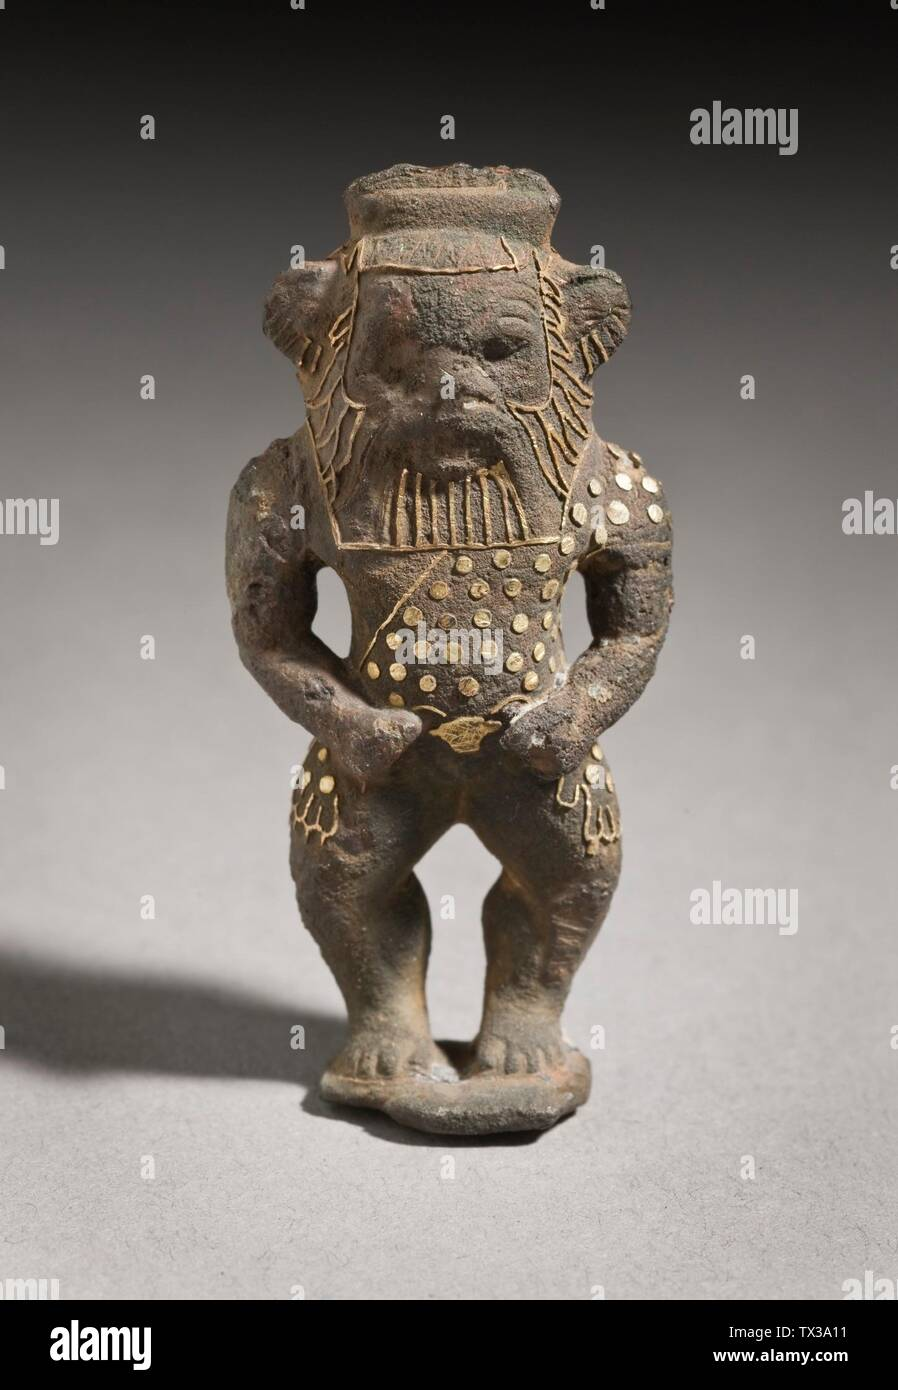 'Figurine of the God Bes; Egypt, Third Intermediate Period (1081 - 711 B.C.) Sculpture Bronze with gold inlays Height:  2 1/4 in. (5.7 cm) Museum Associates General Acquisition Fund, Joan Palevsky, and the Ancient Art Council (M.90.28) Egyptian Art; Third Intermediate Period (1081 - 711 B.C.); ' - Stock Image